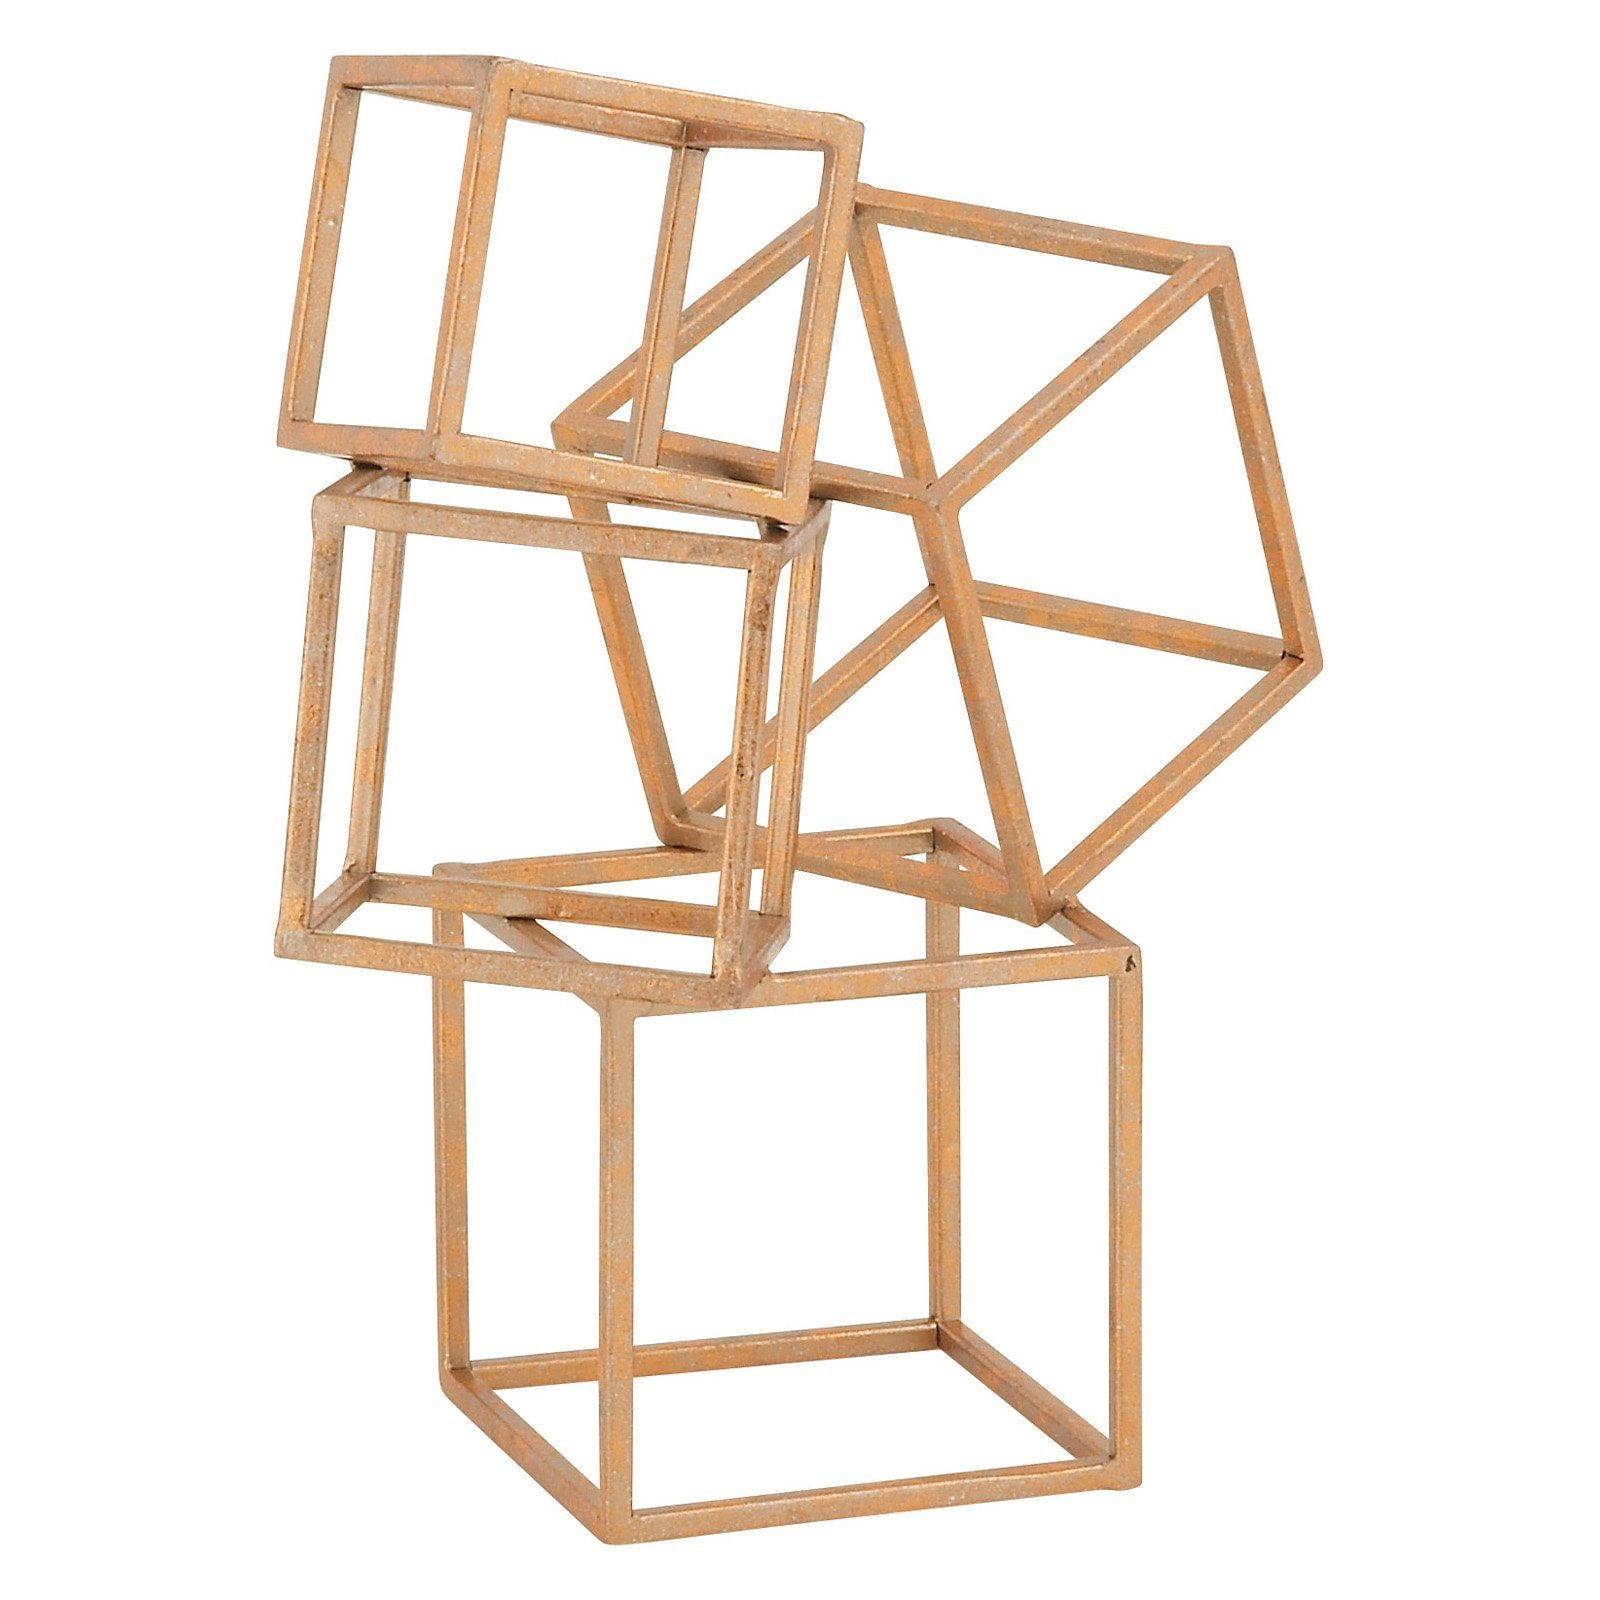 DecMode Metal Table Decor Sculpture is part of Metal Home Accessories Living Rooms - Dimensions 11W x 5D x 14H in   Iron construction  Stacked, cubed design  Rough and buffed copper finish  Weight 1 54 lbs   Bring some simple, geometric flair to your living room or bedroom design with the DecMode Metal Table Decor Sculpture  This stunning sculpture is made from iron slats, featuring a series of hollow cubes (in various sizes) stacked sturdily atop one another  The sculpture stands stably on its own and comes finished in a rough copper finish for a weathered look